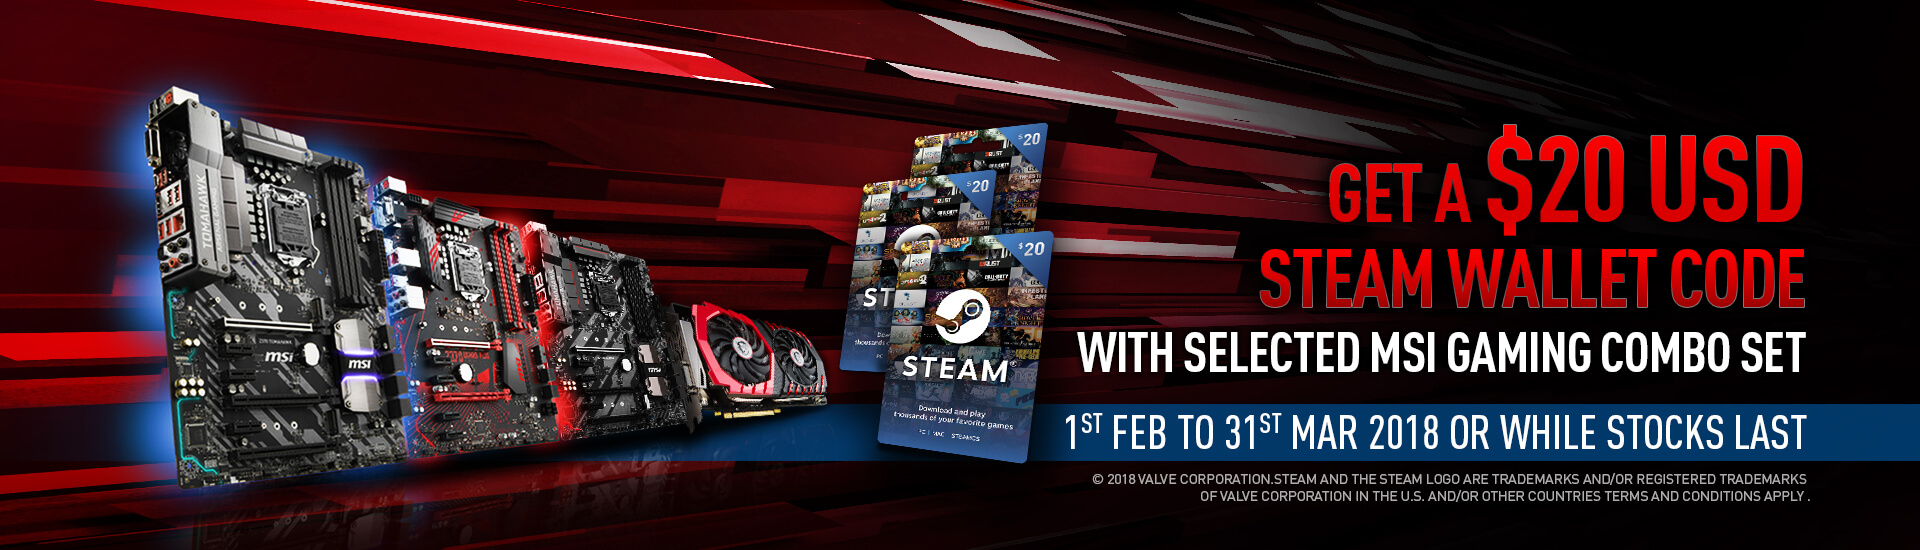 ZA - MB ROW+ AU steam wallet code bundle promotion | MSI Global